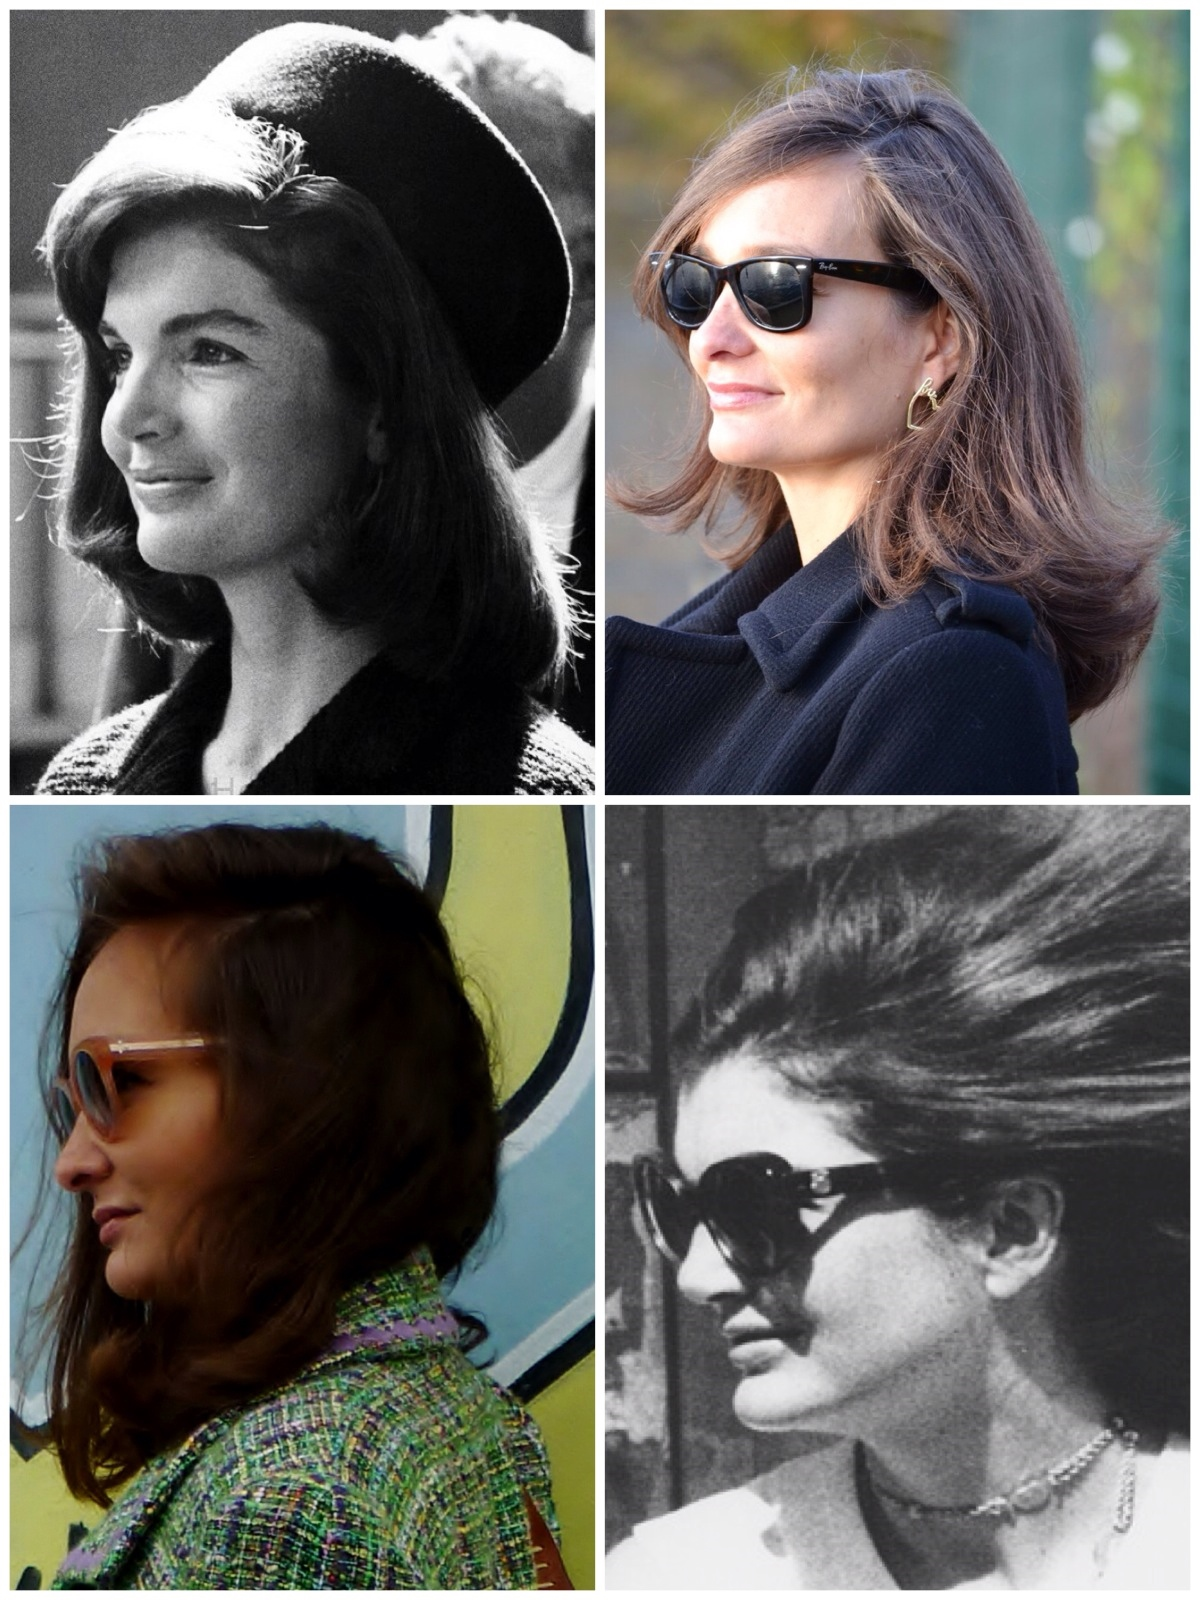 Jackie-KEnnedy-2.0-look-a-like-doppelgaenger